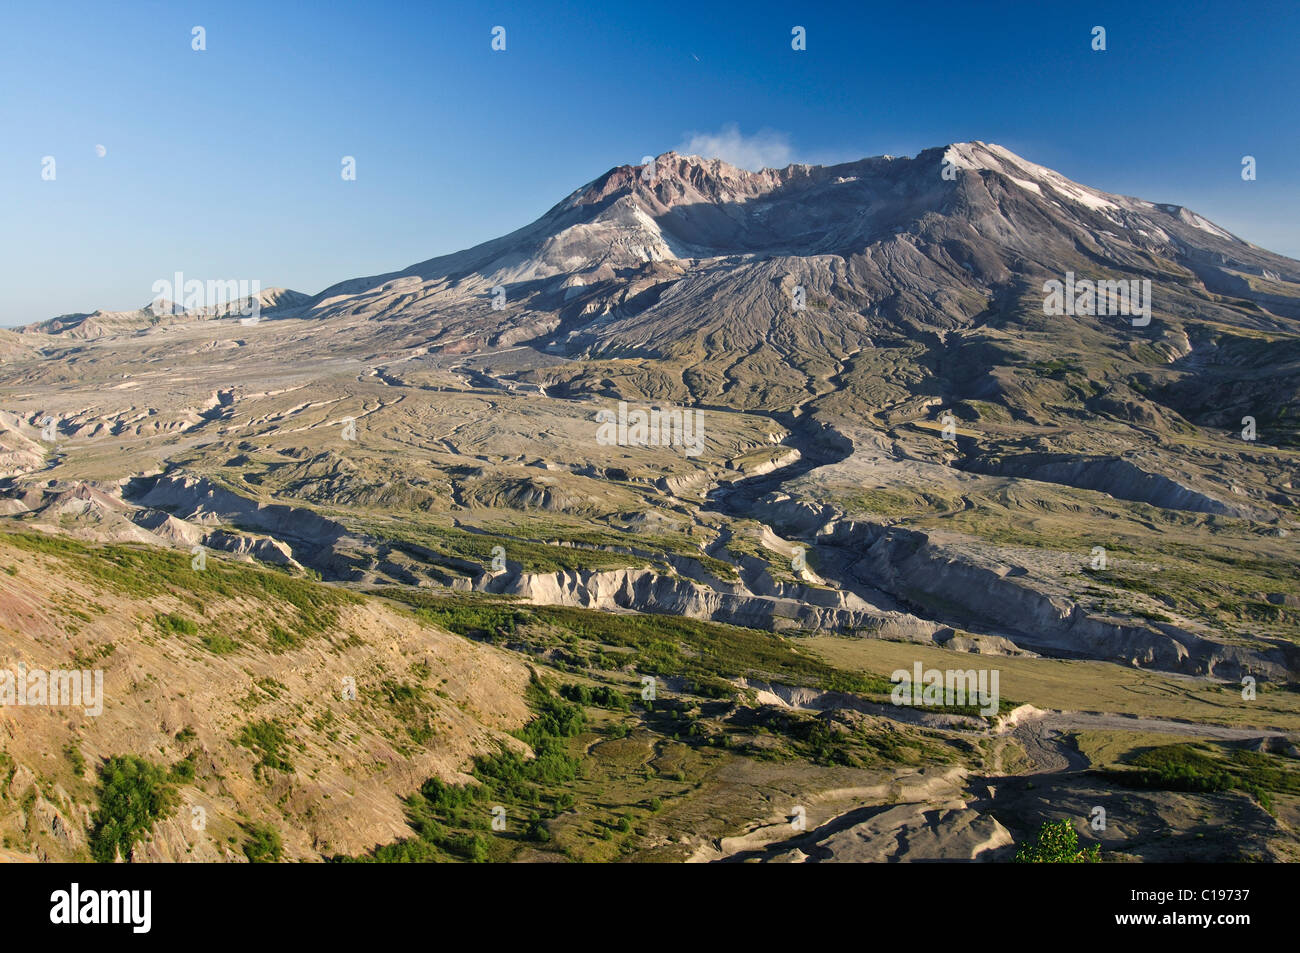 Active volcano Mount St. Helens smoking, National Volcanic Monument State Park, Washington, USA, North America - Stock Image